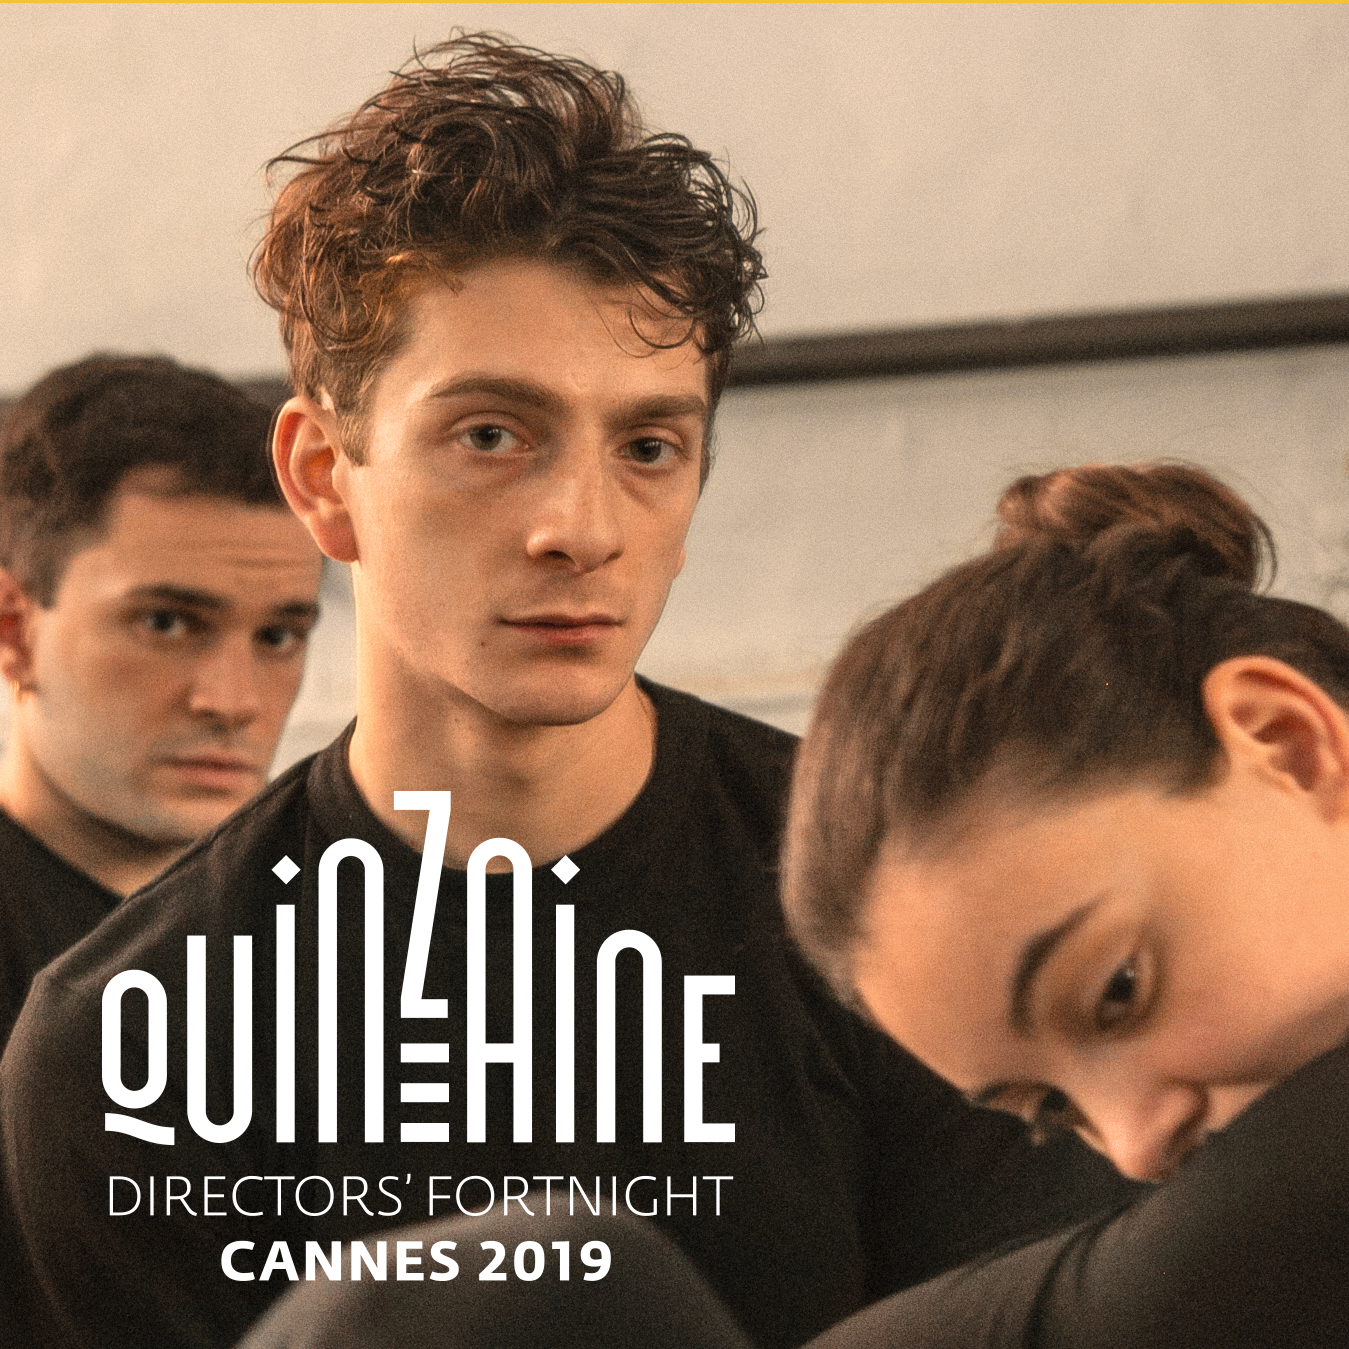 Group_Quinzaine_Square_Social Media_2.png